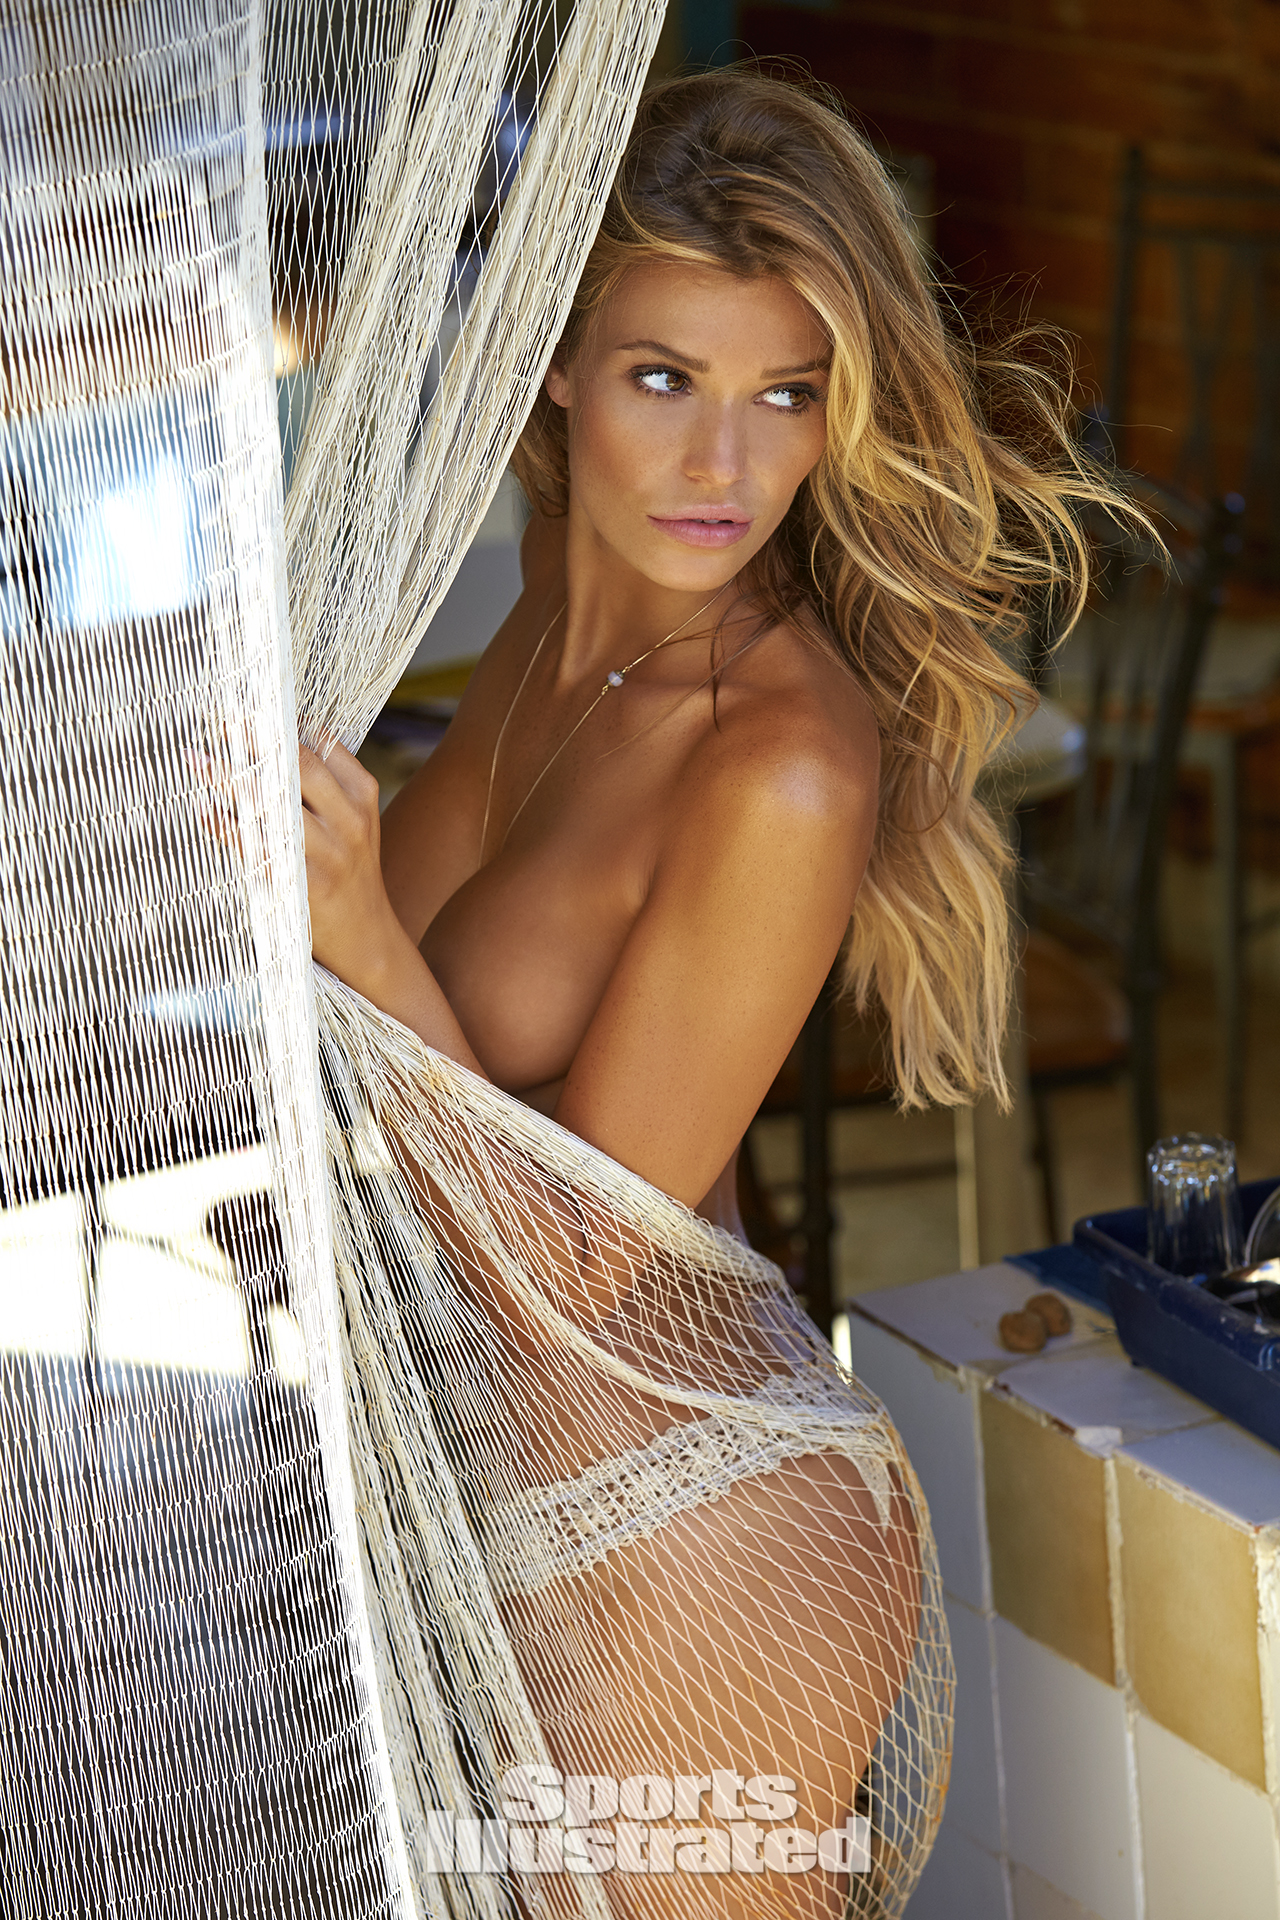 Samantha Hoopes was photographed by Ben Watts in Malta. Swimsuit by Anna Kosturova.